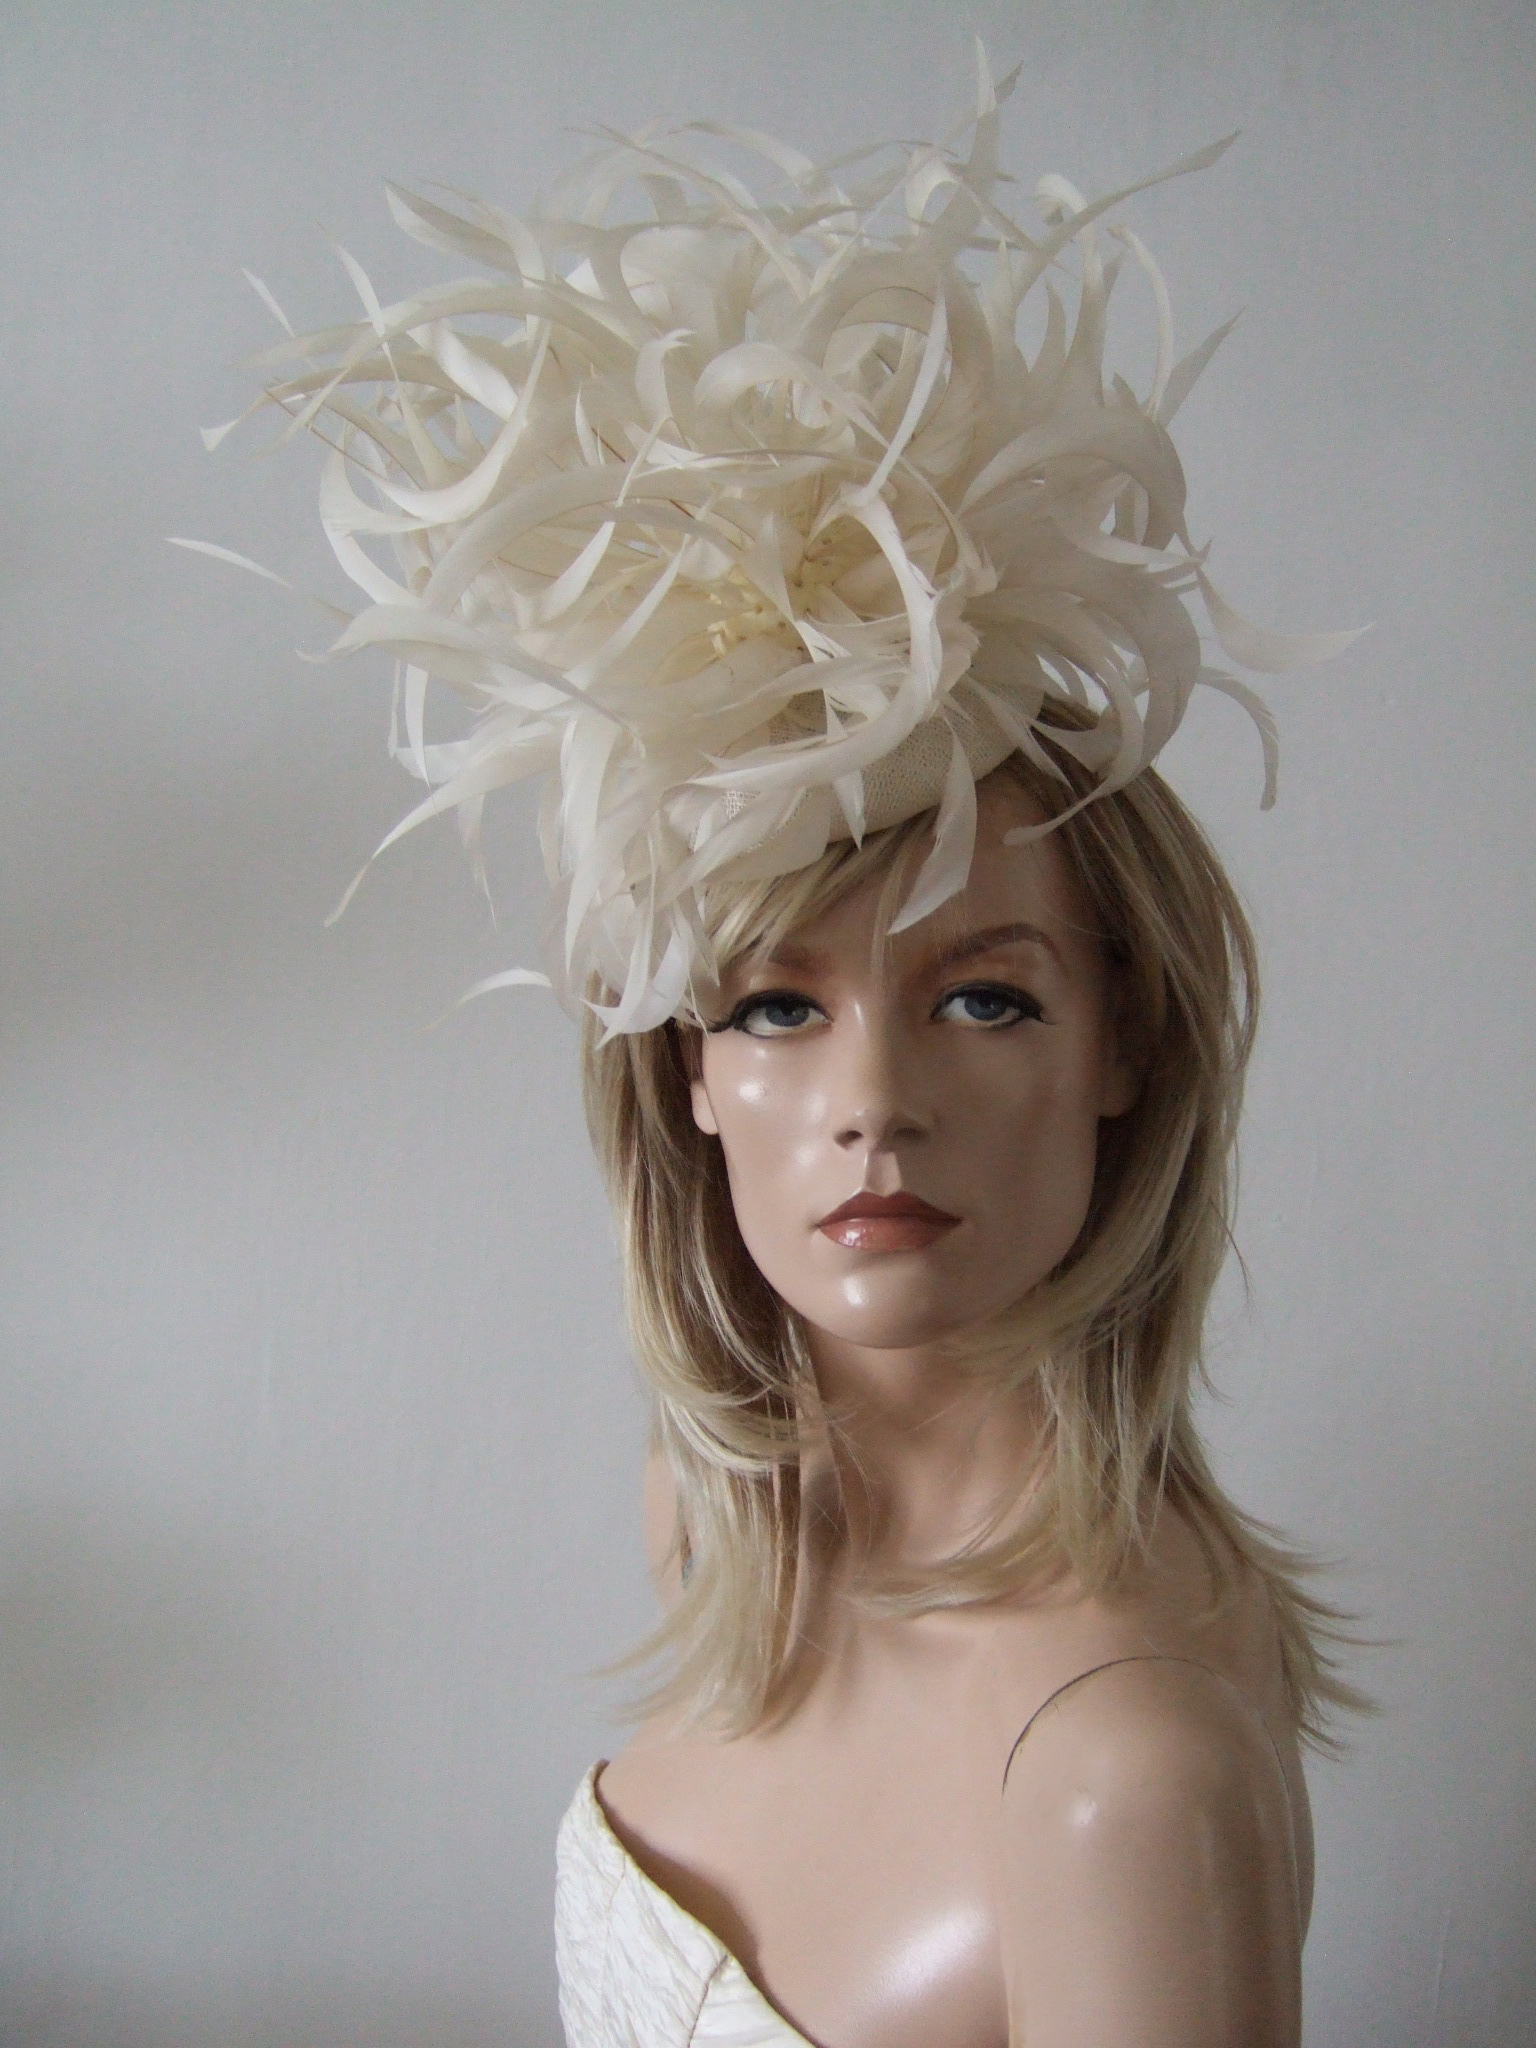 Designer Hats for Hire UK. Hats for Summer Wedding Guests UK. Ivory Royal Ascot Headpieces 2020. Designer Fascinators for Hire 2020. Wedding Fascinators for Hire UK 2020. Designer Hats for Royal Ascot 2020. Mother of the Groom Hats 2020. Hats to wear to the Races. Hats for Cheltenham Races 2020. Mother of the Bride Hat Hire 2020. Summer Wedding Fascinators.